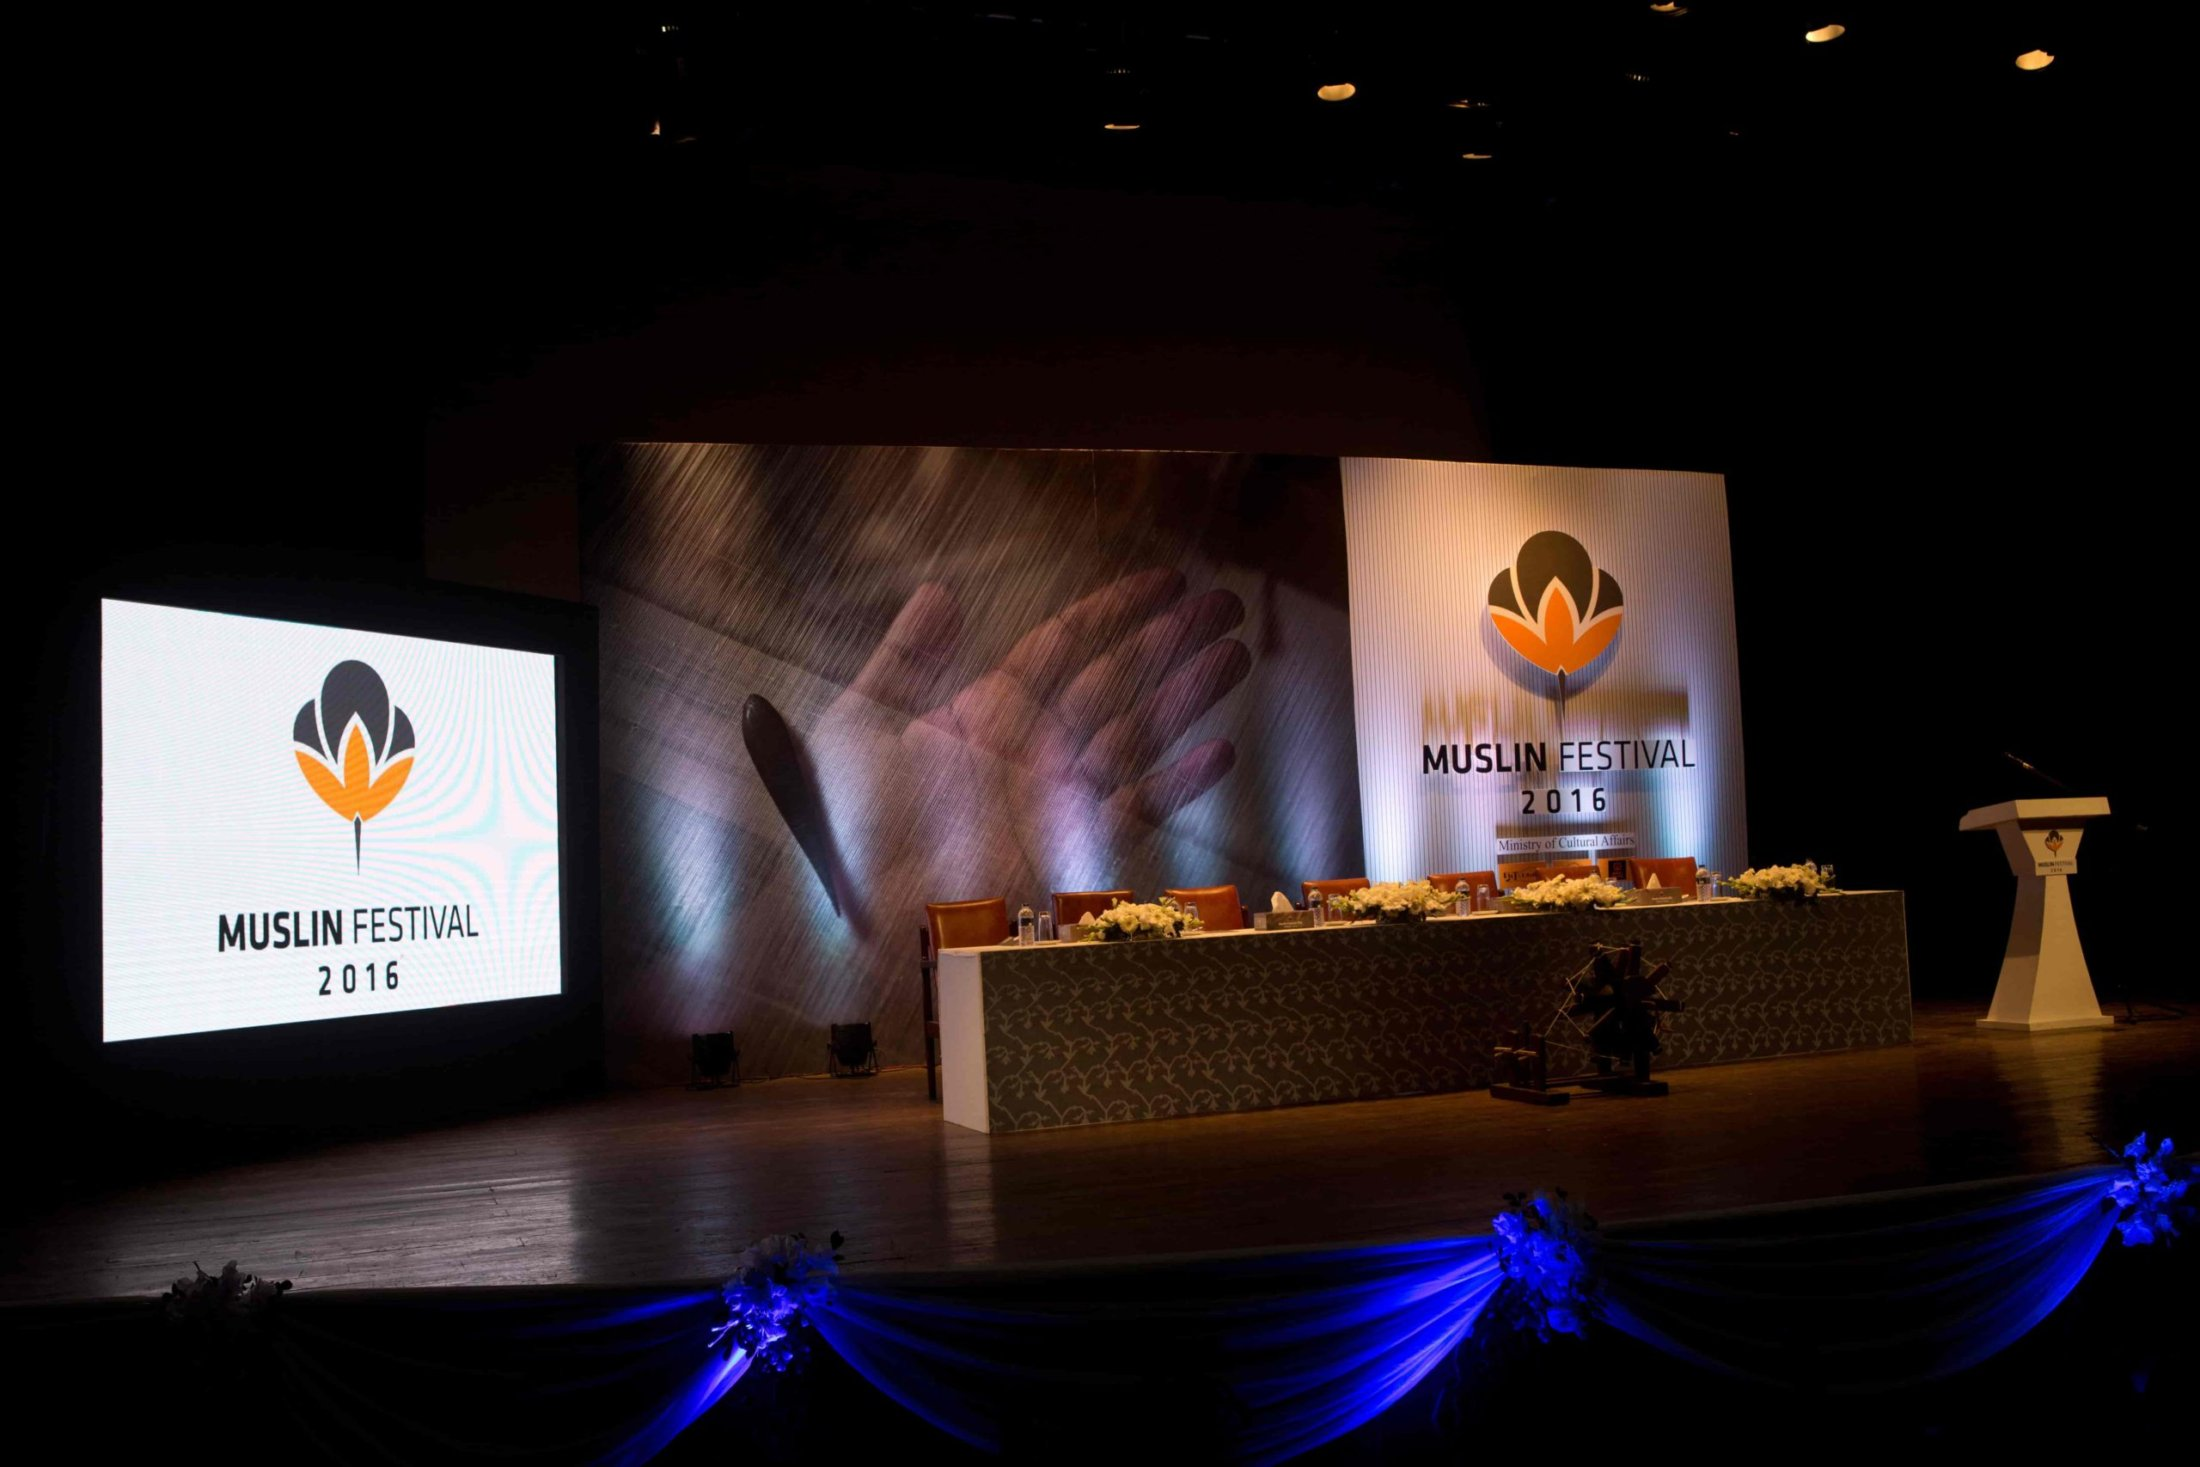 2. The stage is set for the Muslin Festival, 2016-min